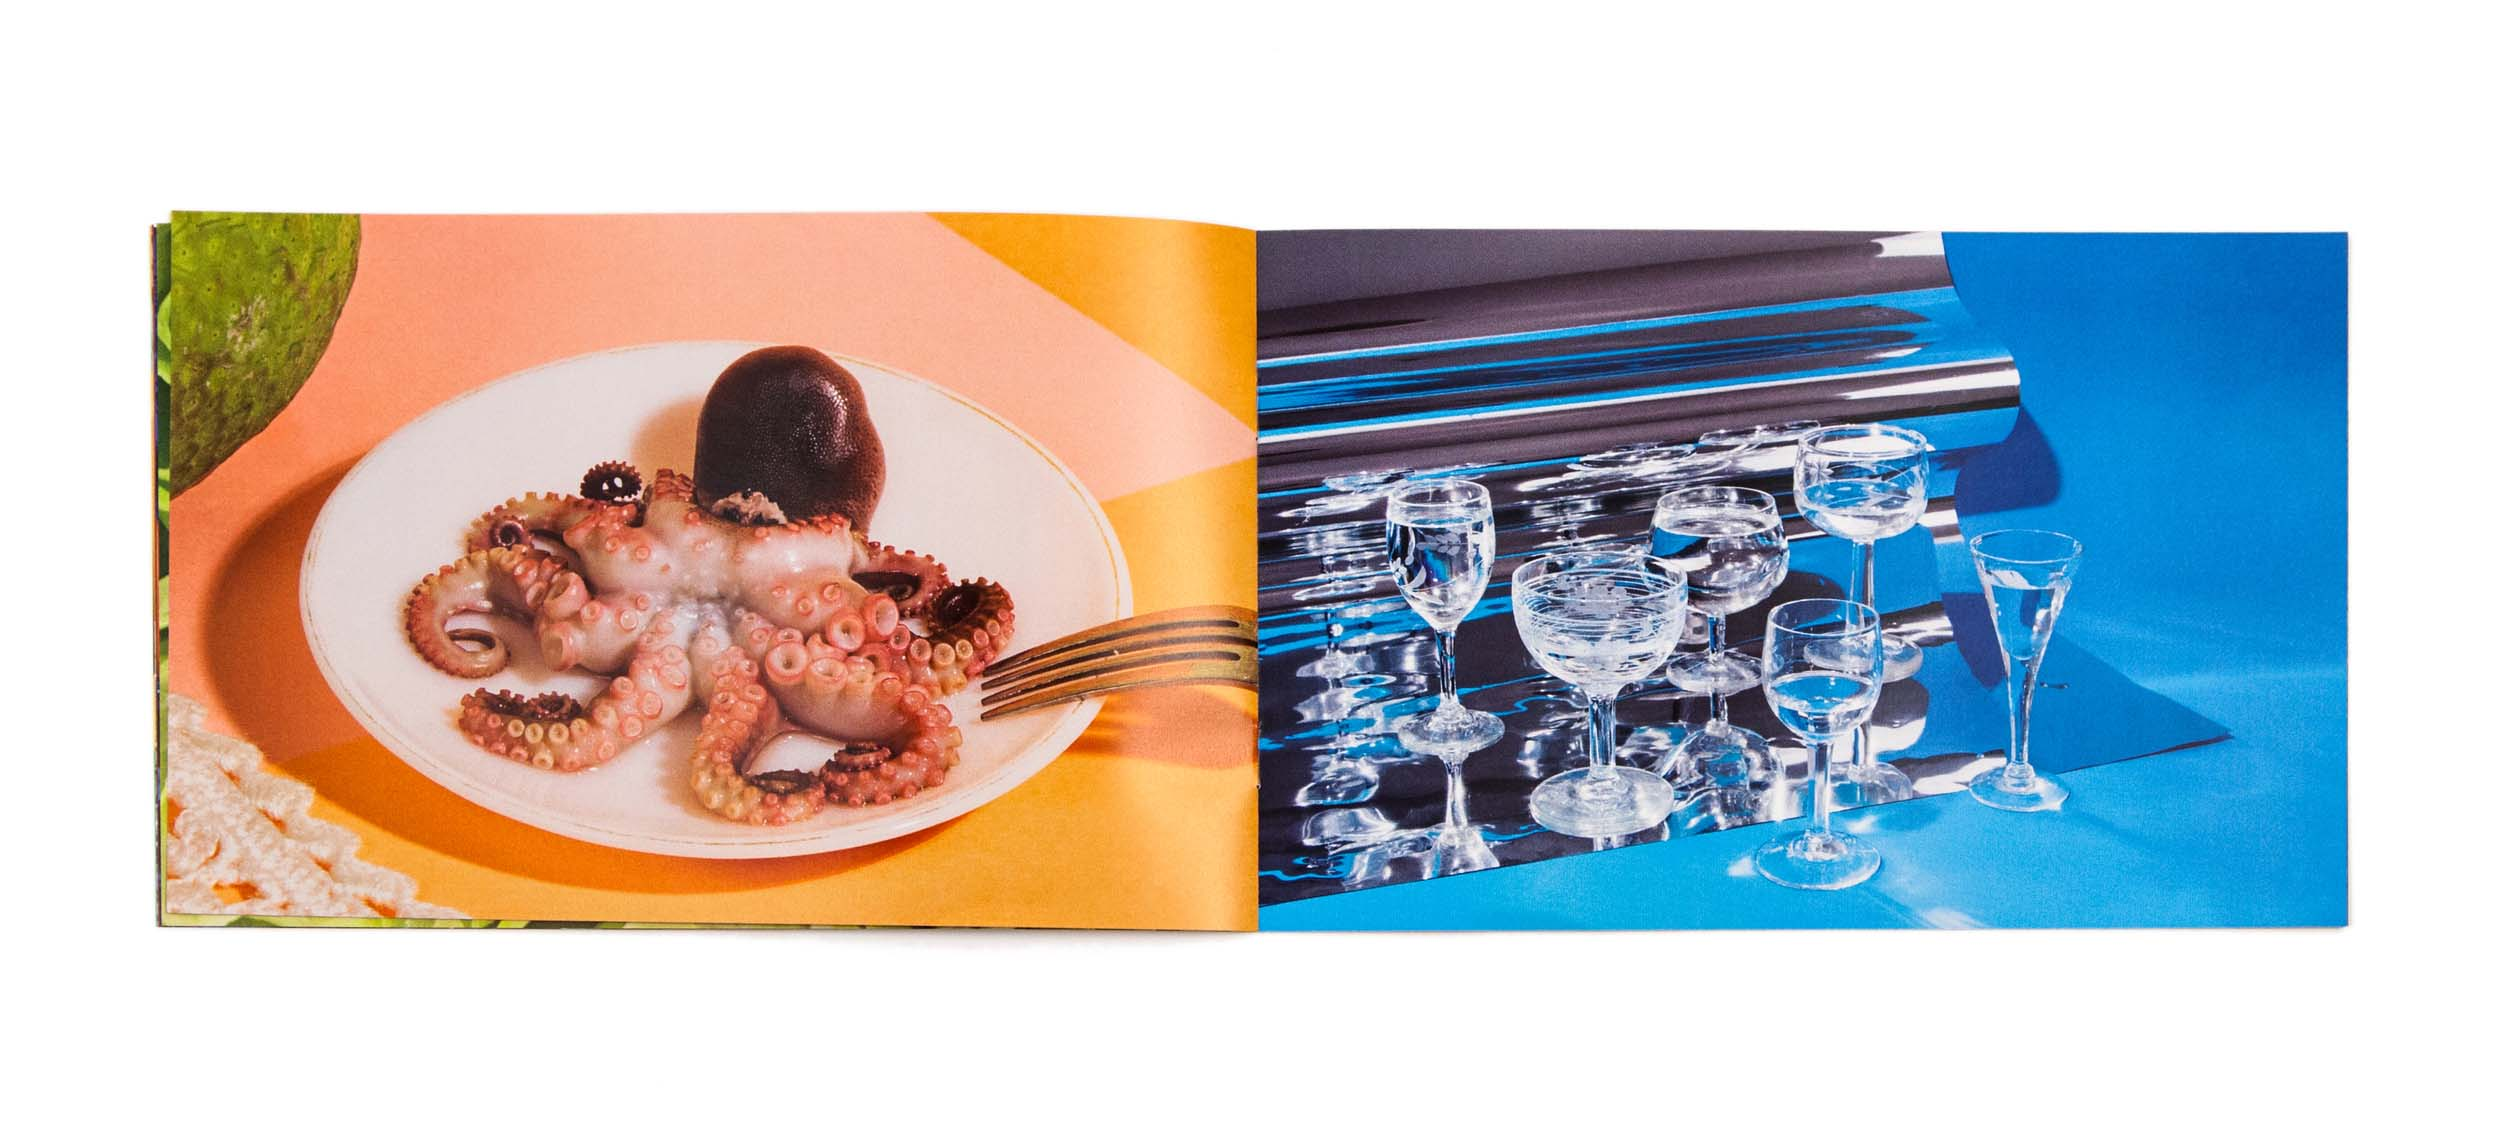 lazy mom stop motion, conceptual processed food art, food fine artist, food creative, food photography inspirations, phoode, food photography social media, conceptual food photography, food photography instagram, food experimental art, junk food conceptual art, food textures colors shapes, food stop-motion animation